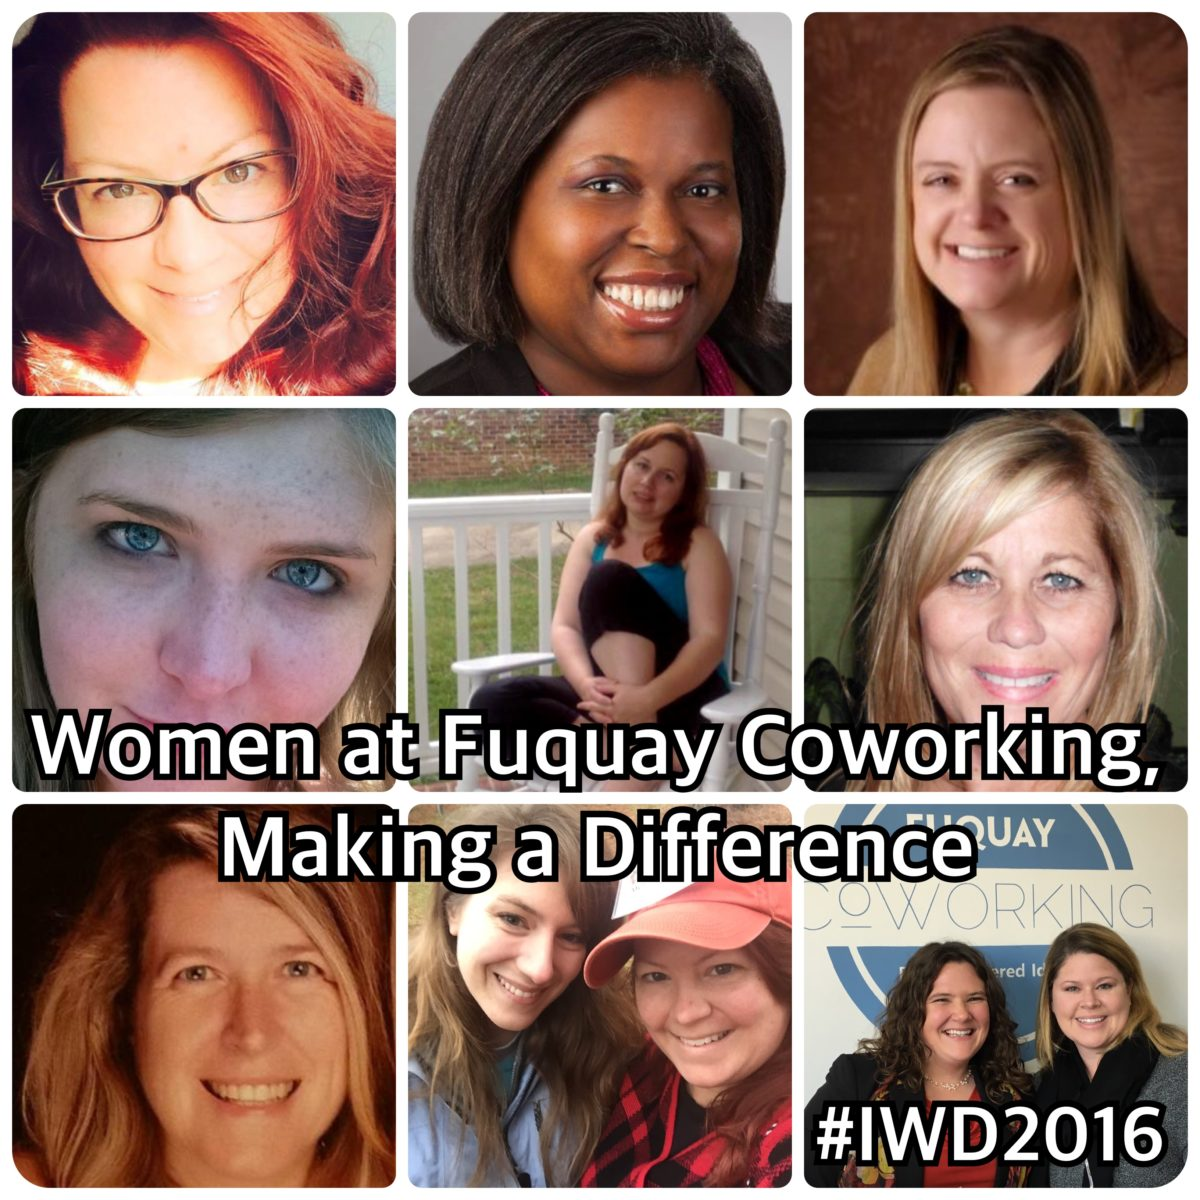 Fuquay Coworking Celebrates International Women's Day 2016